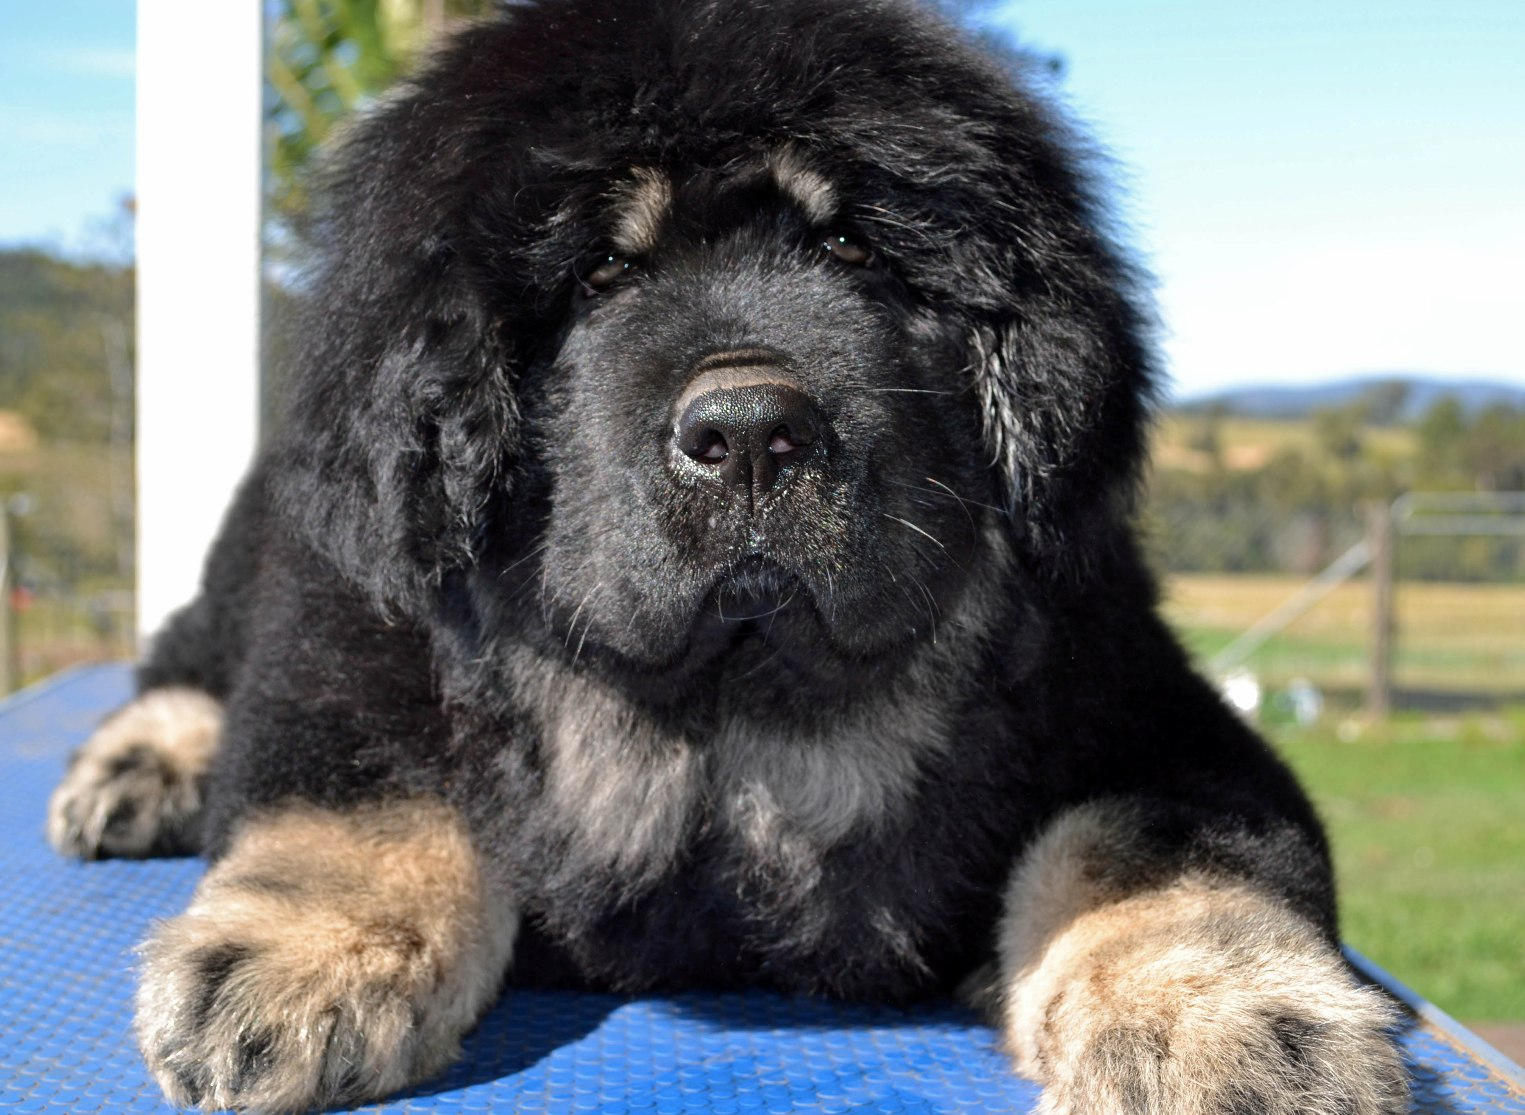 Tibetan Mastiff Dog The Do-khyi and Tsang-khyi